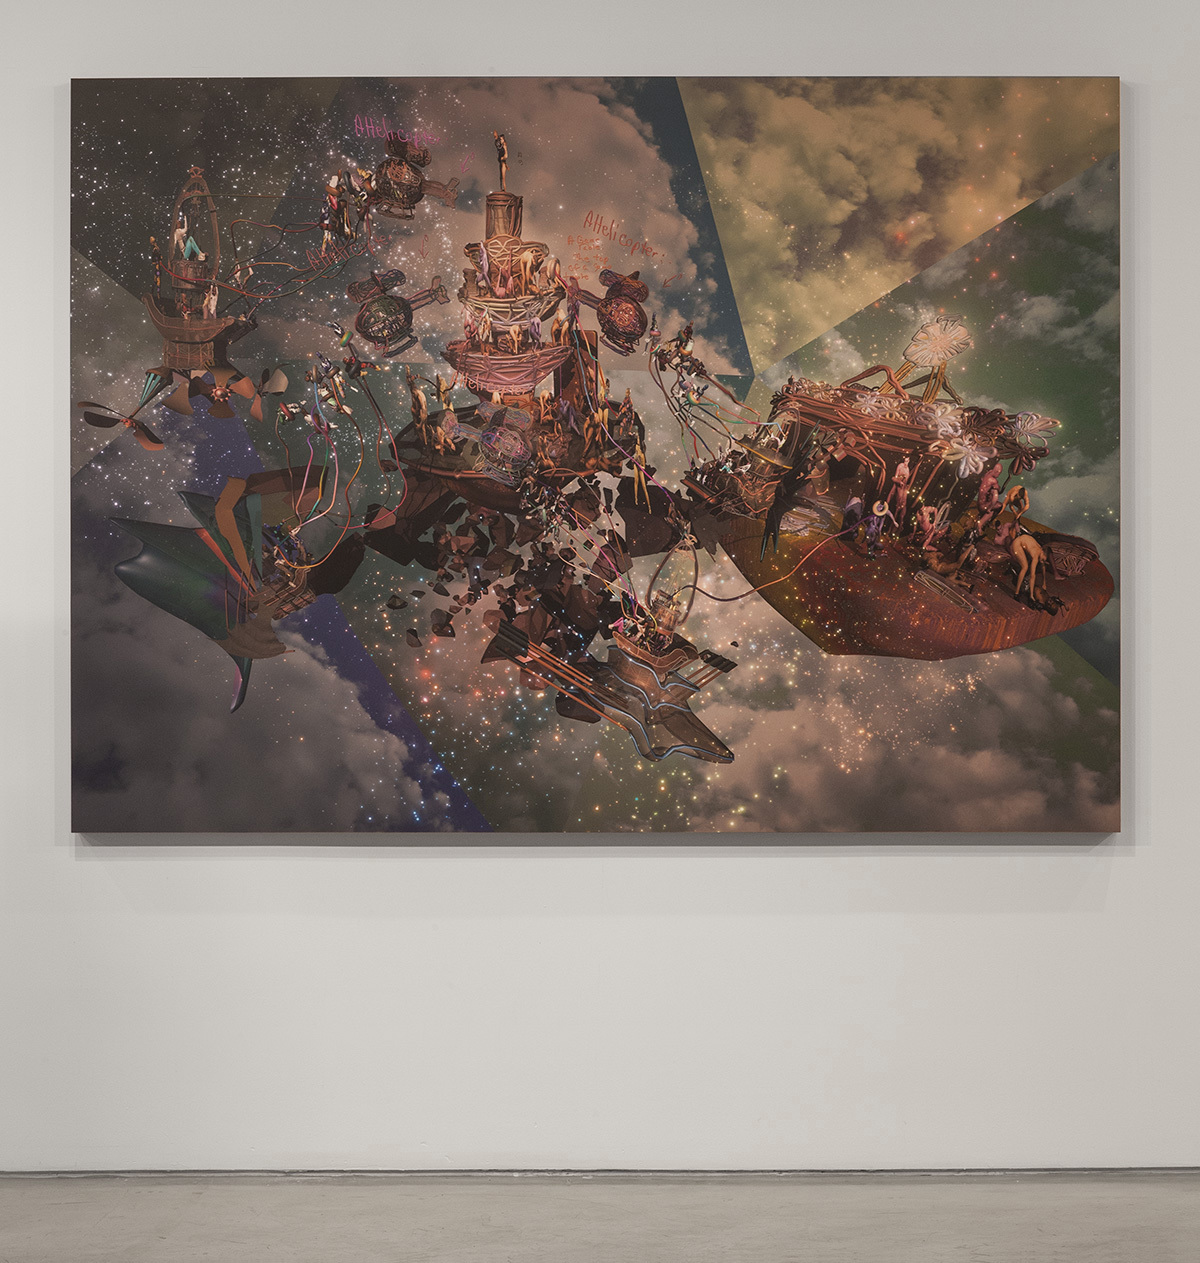 How Jacolby Satterwhite Conquered The Art World I D